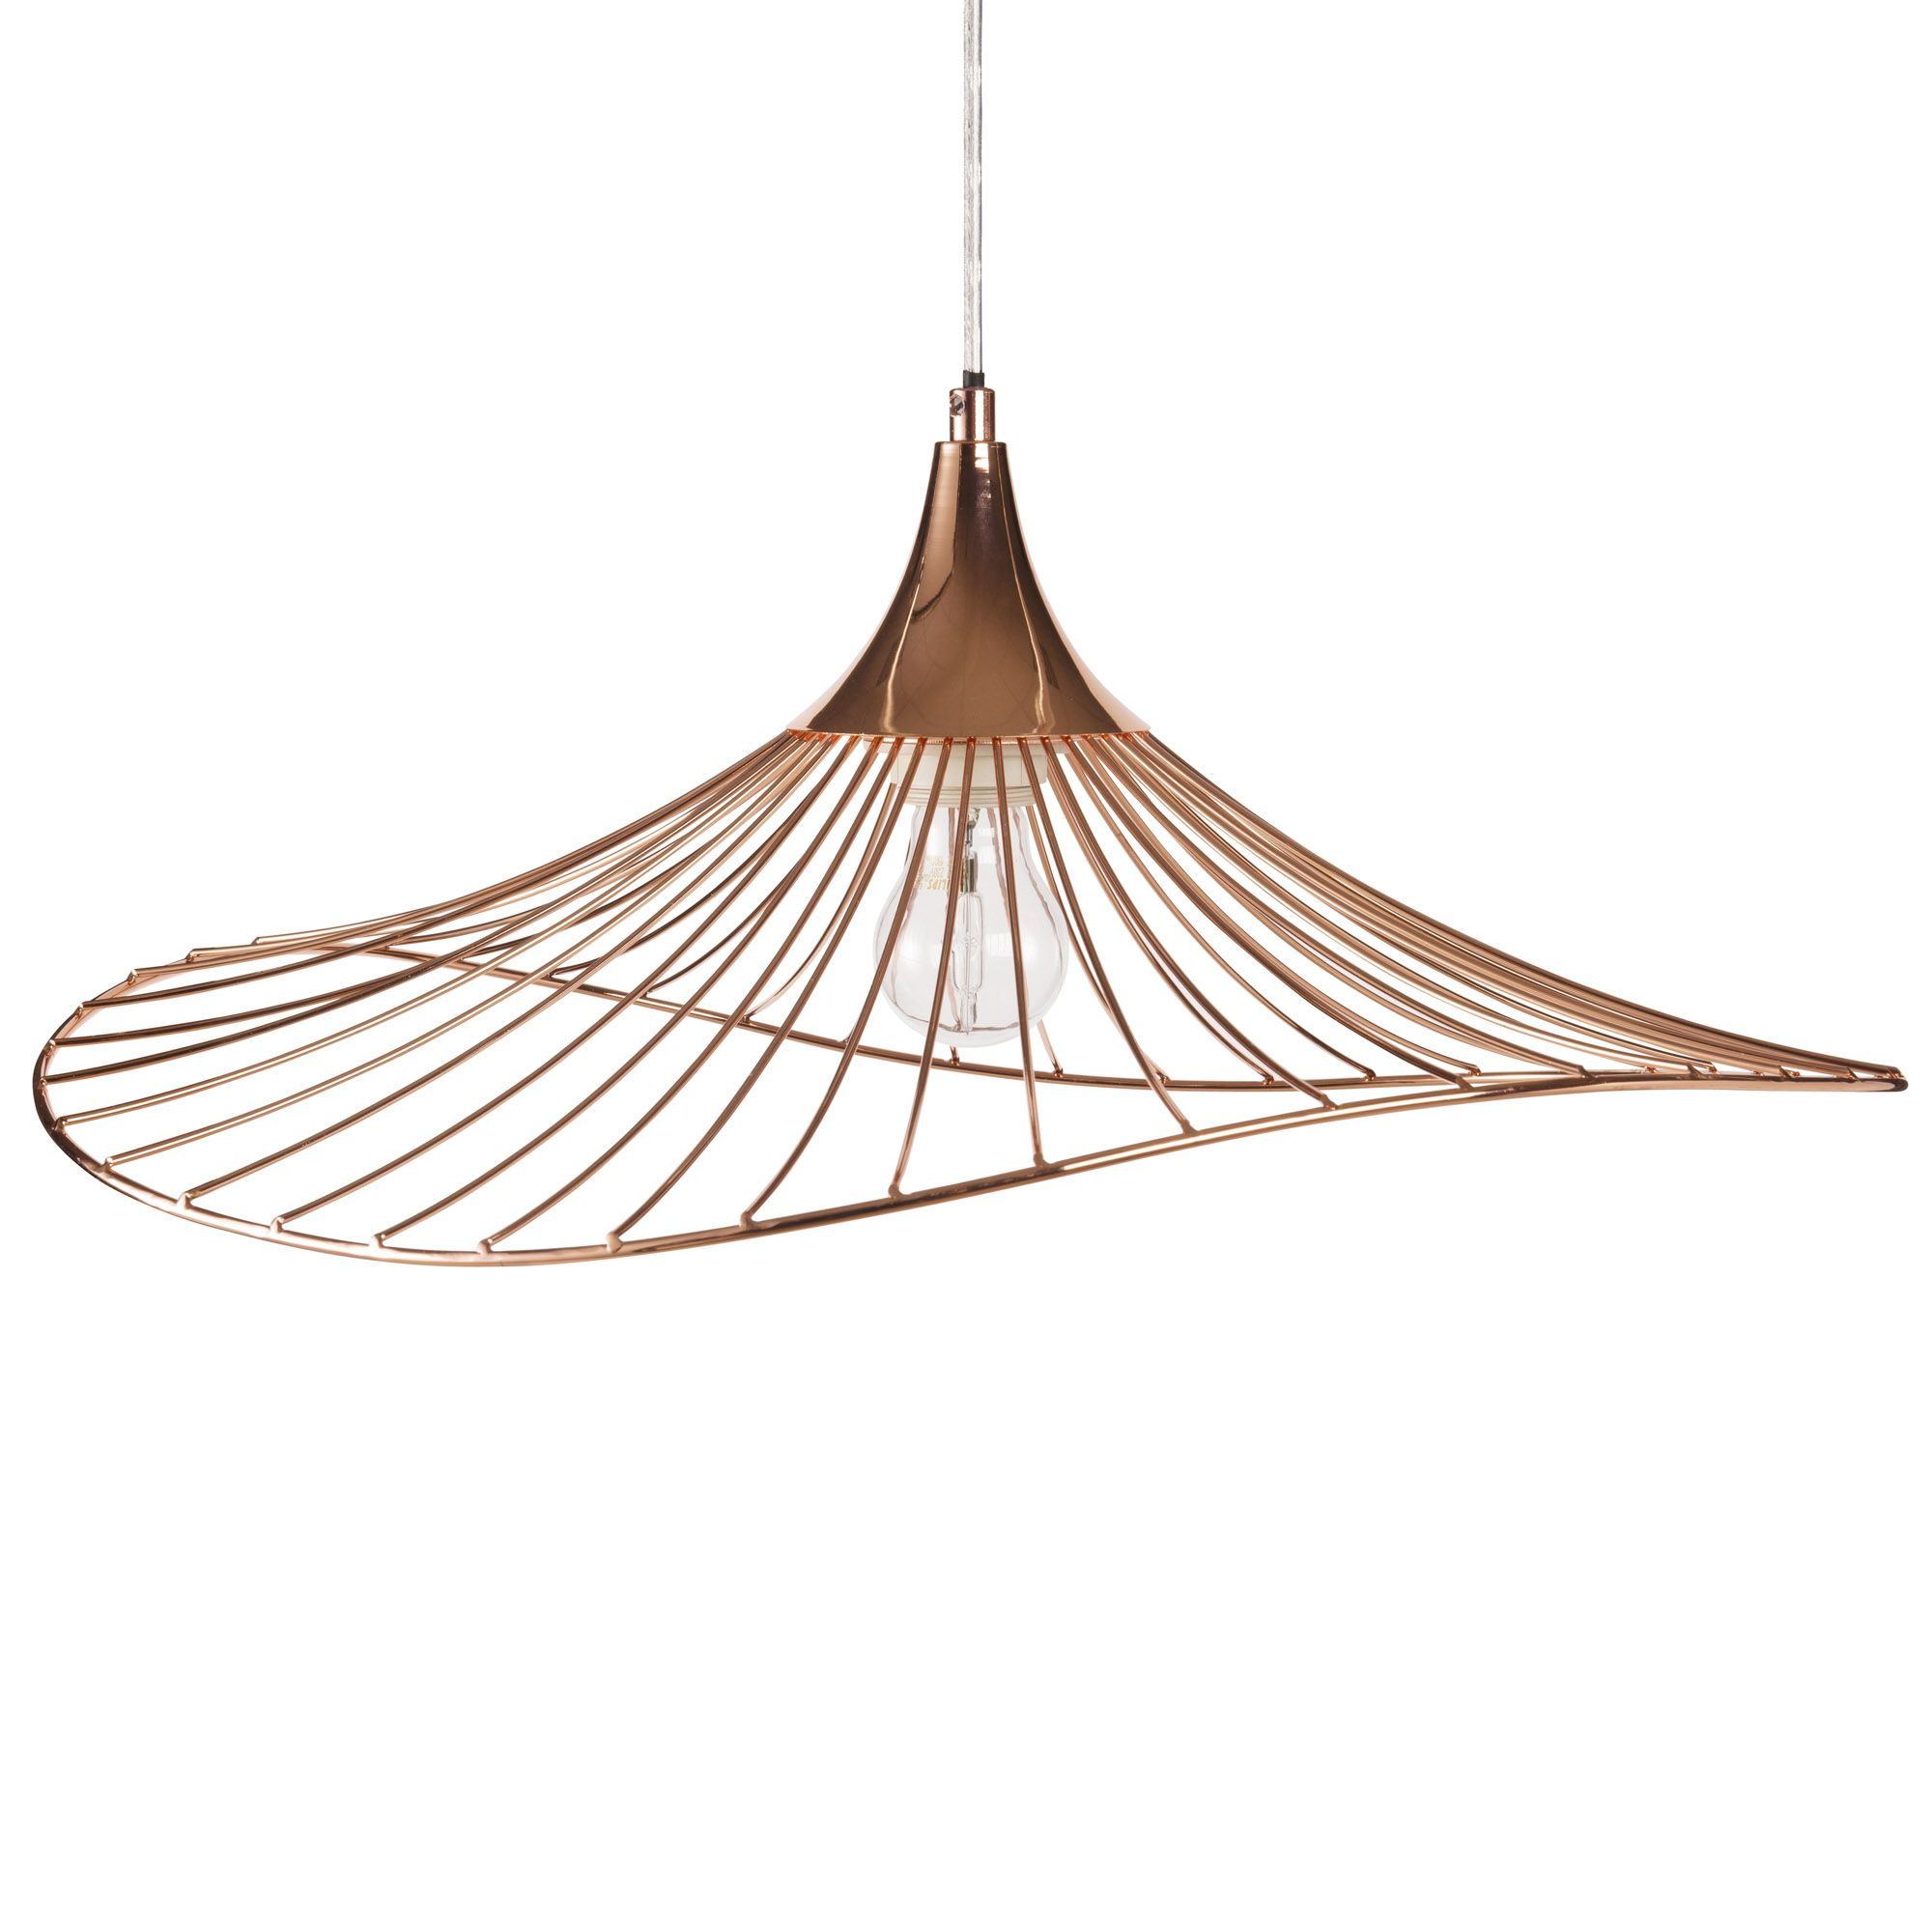 Suspension Cuivre Pas Cher Suspension Filaire En Métal Cuivré En 2019 Atc Copper Lighting